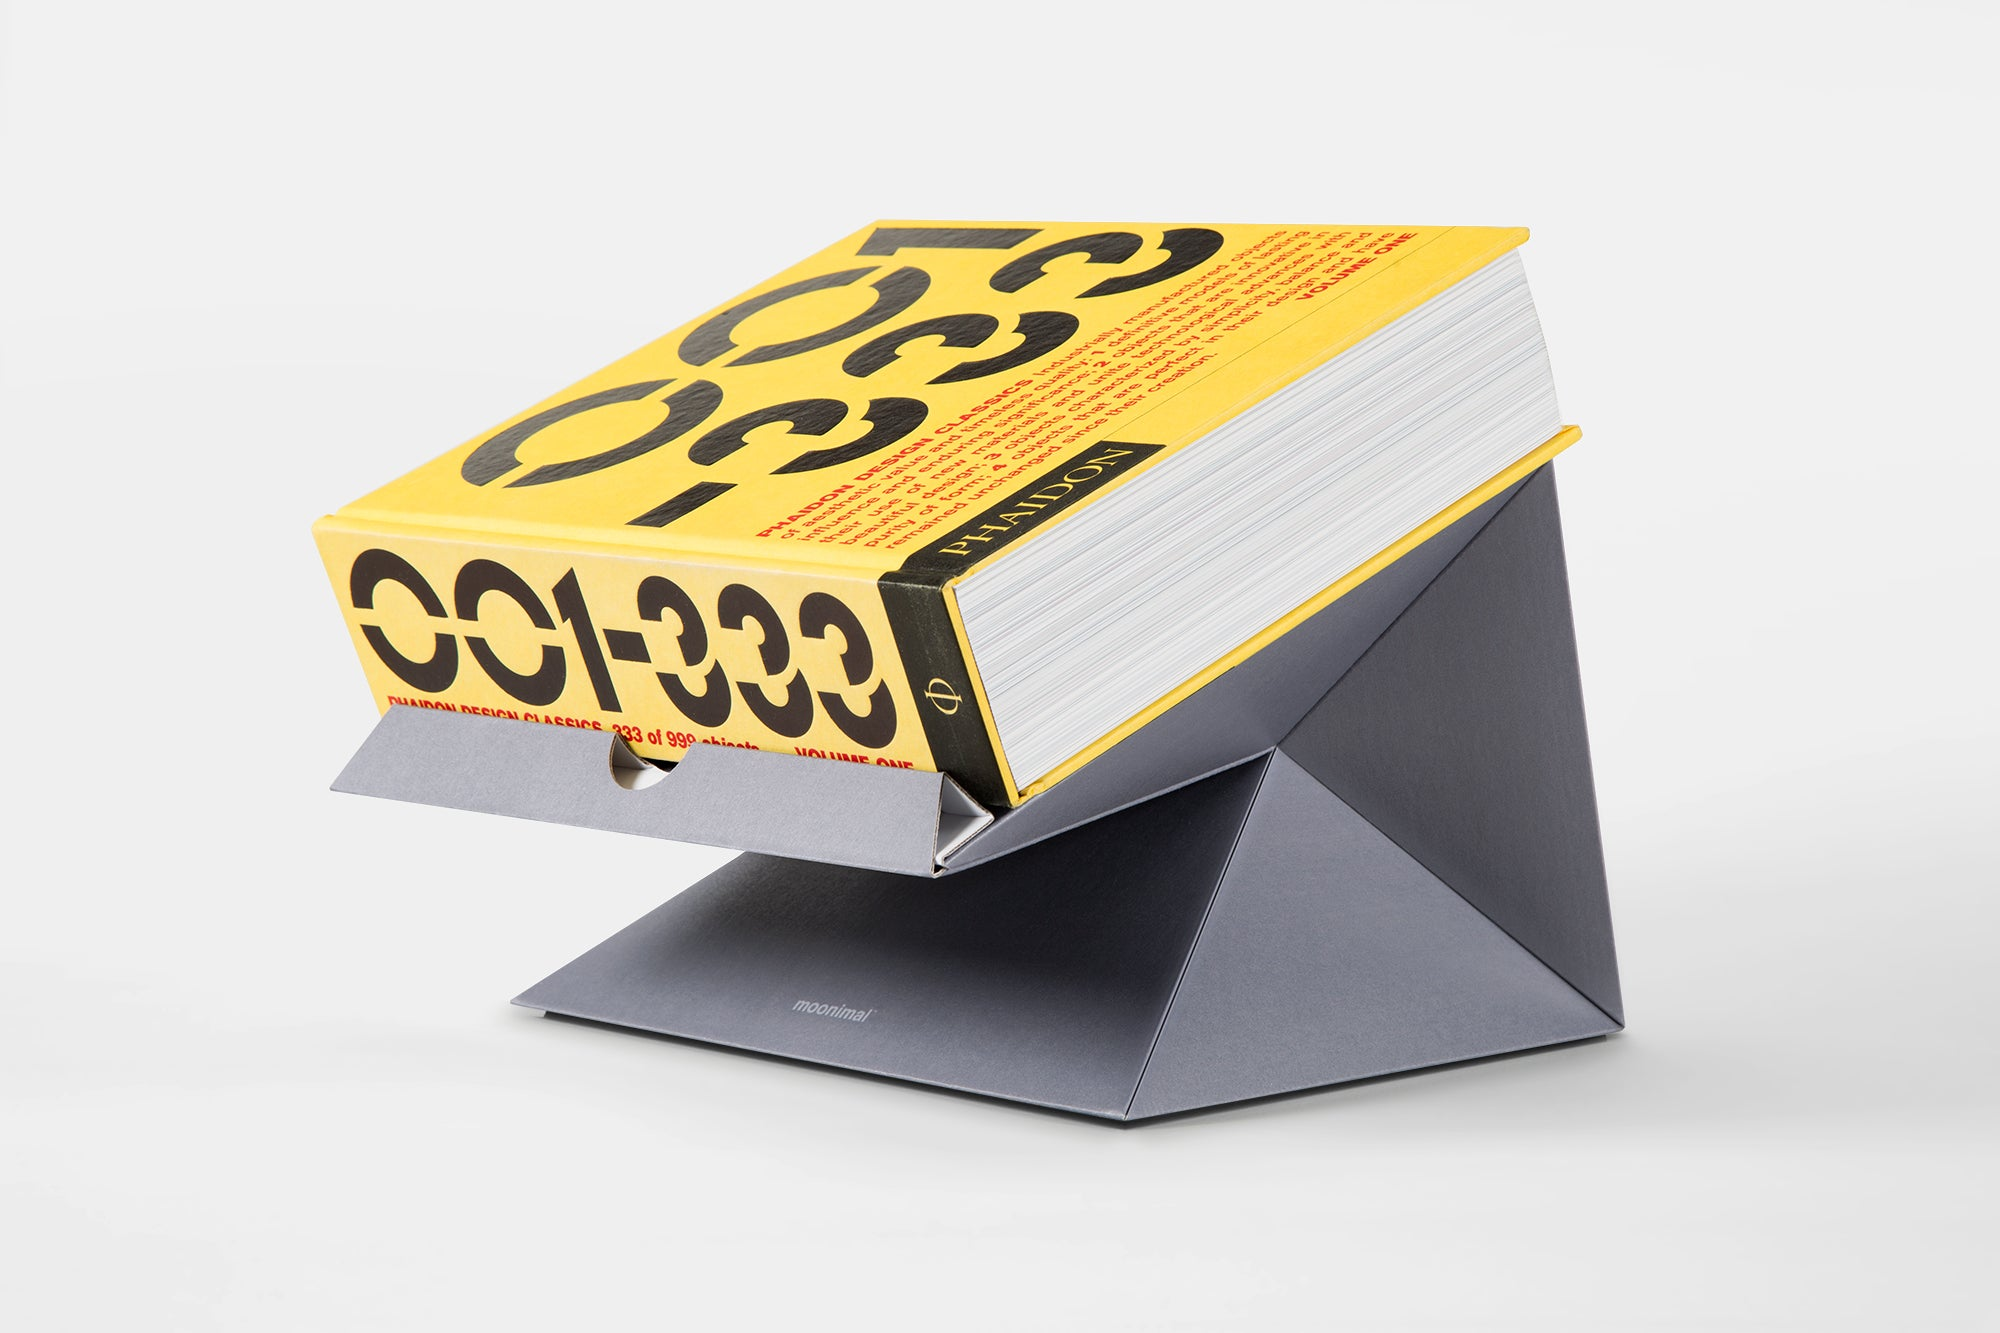 Laptop stand Phaidon Design Classics book